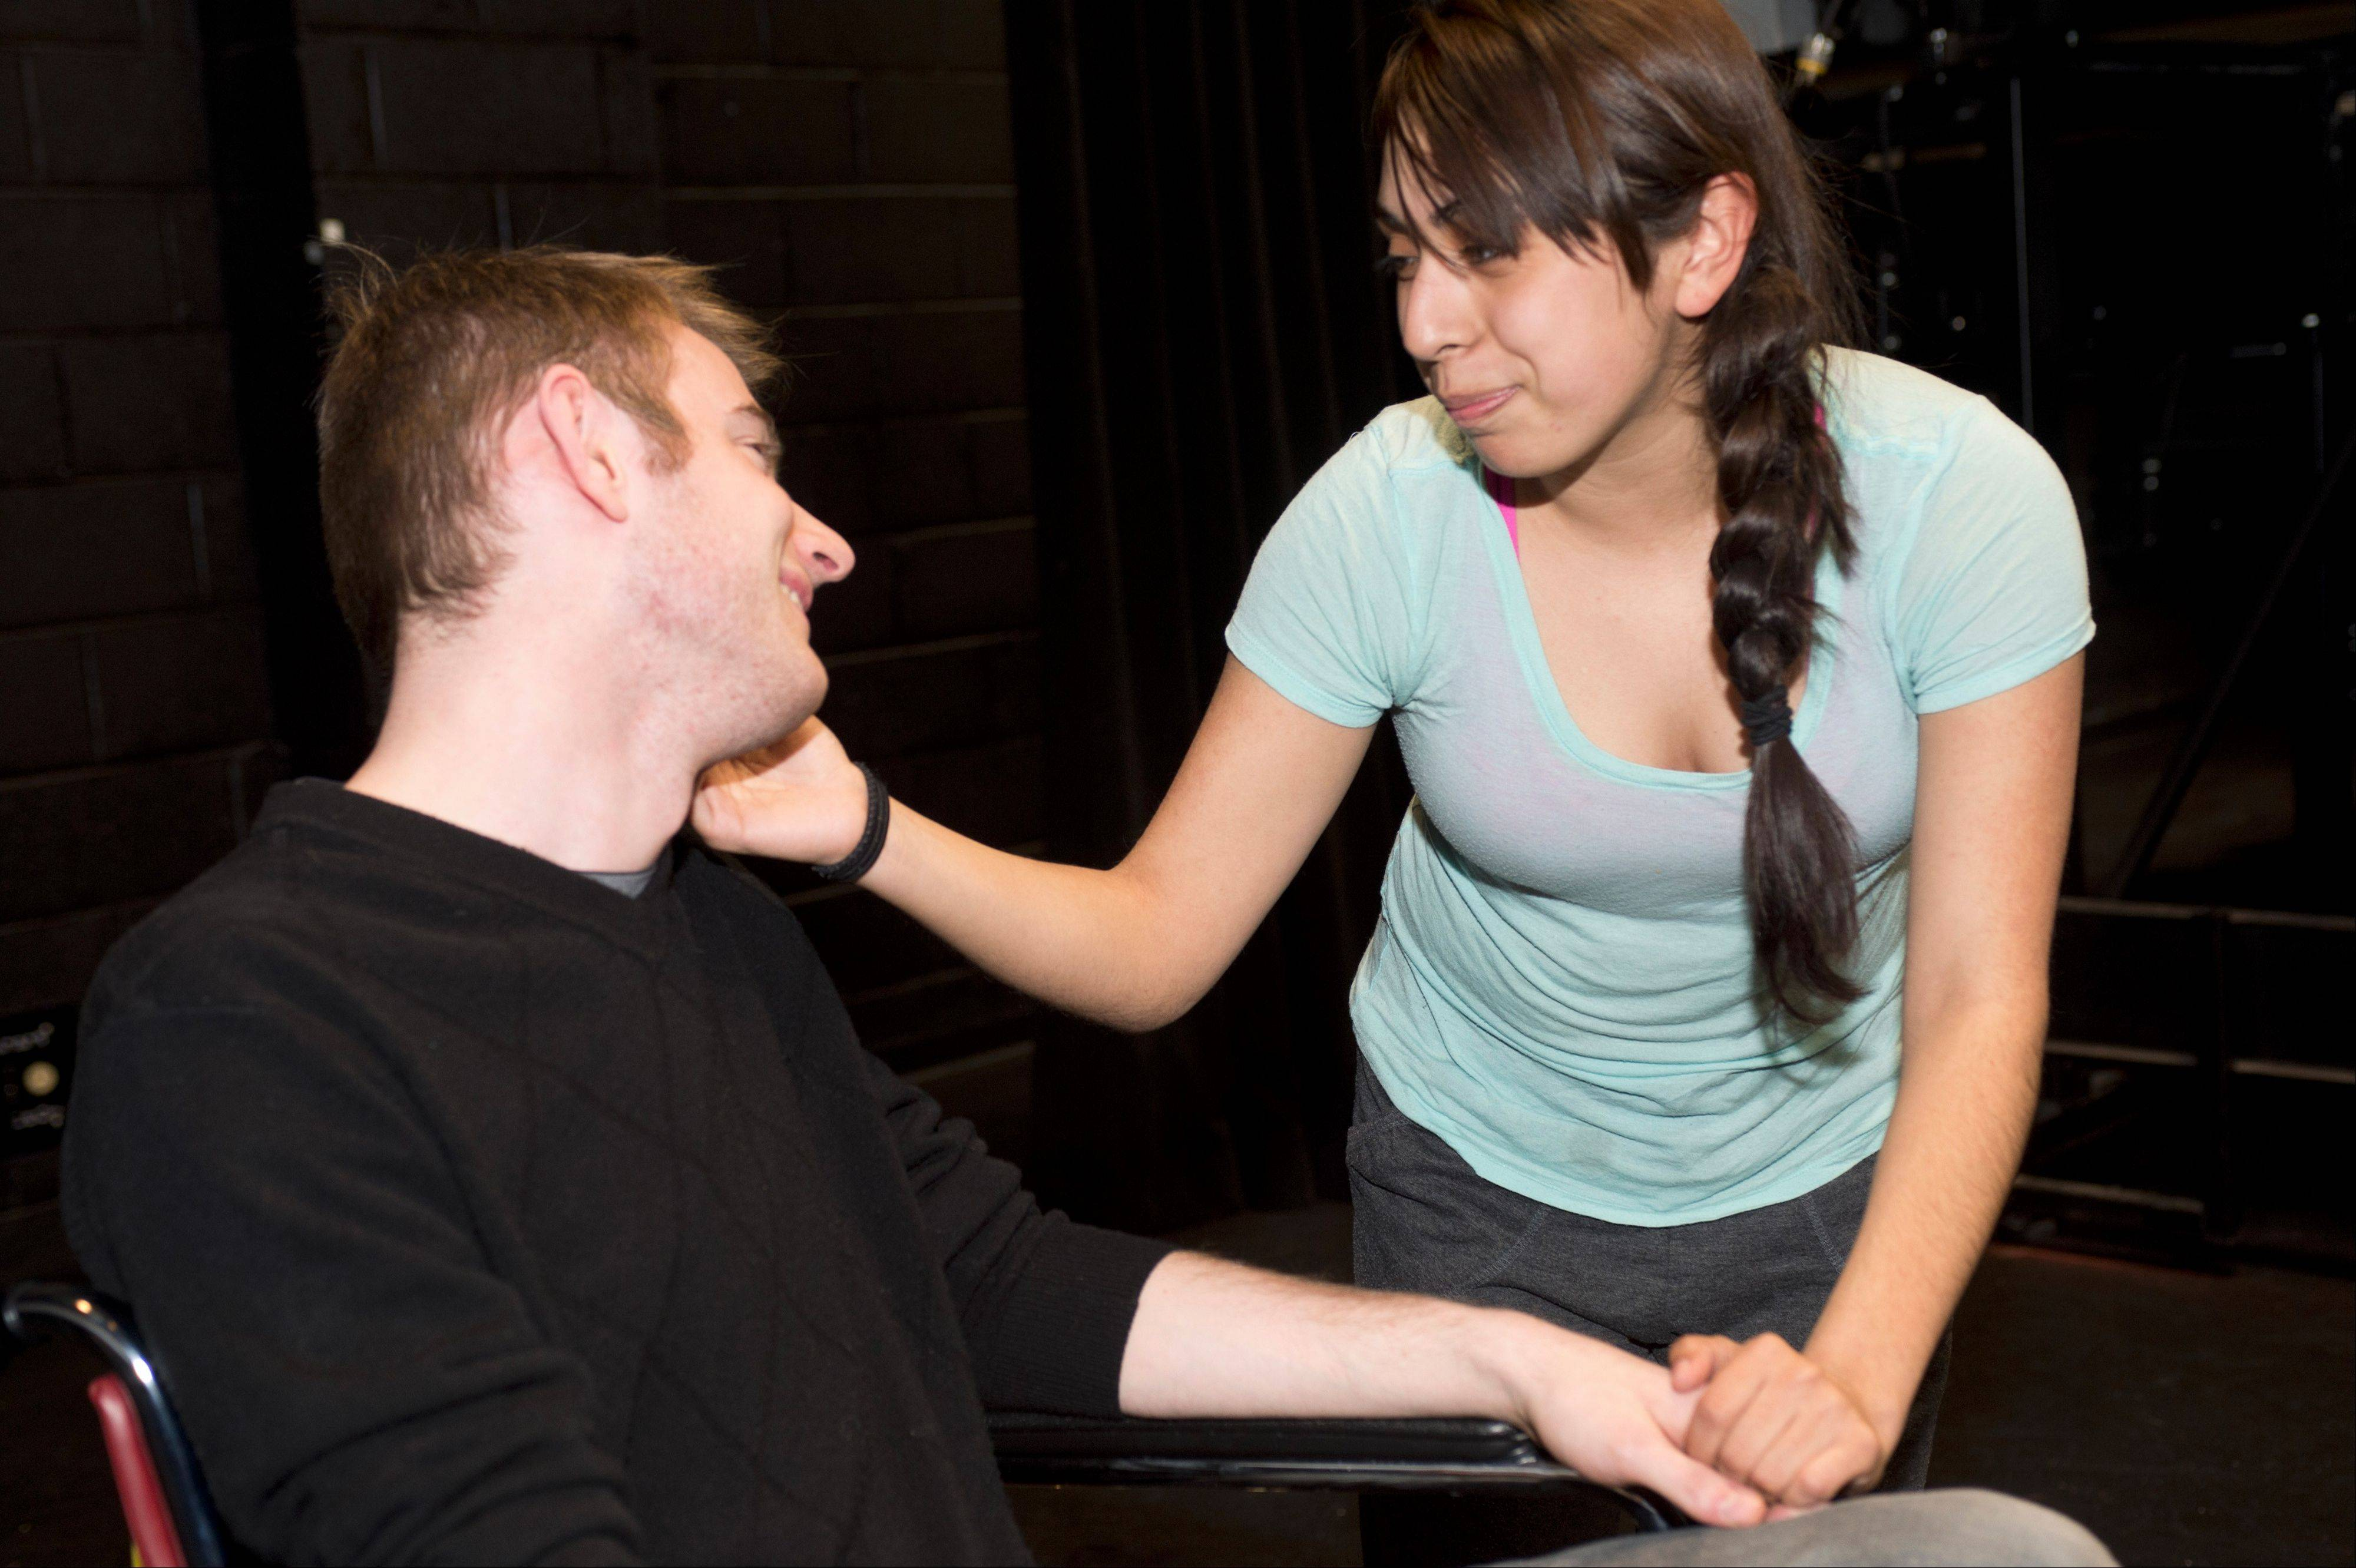 From left, Eric Wagner of St. Charles and Sonya Madrigal of Elgin rehearse their roles in �Our Lady of the Underpass,� which opens Friday, April 19, at Elgin Community College.